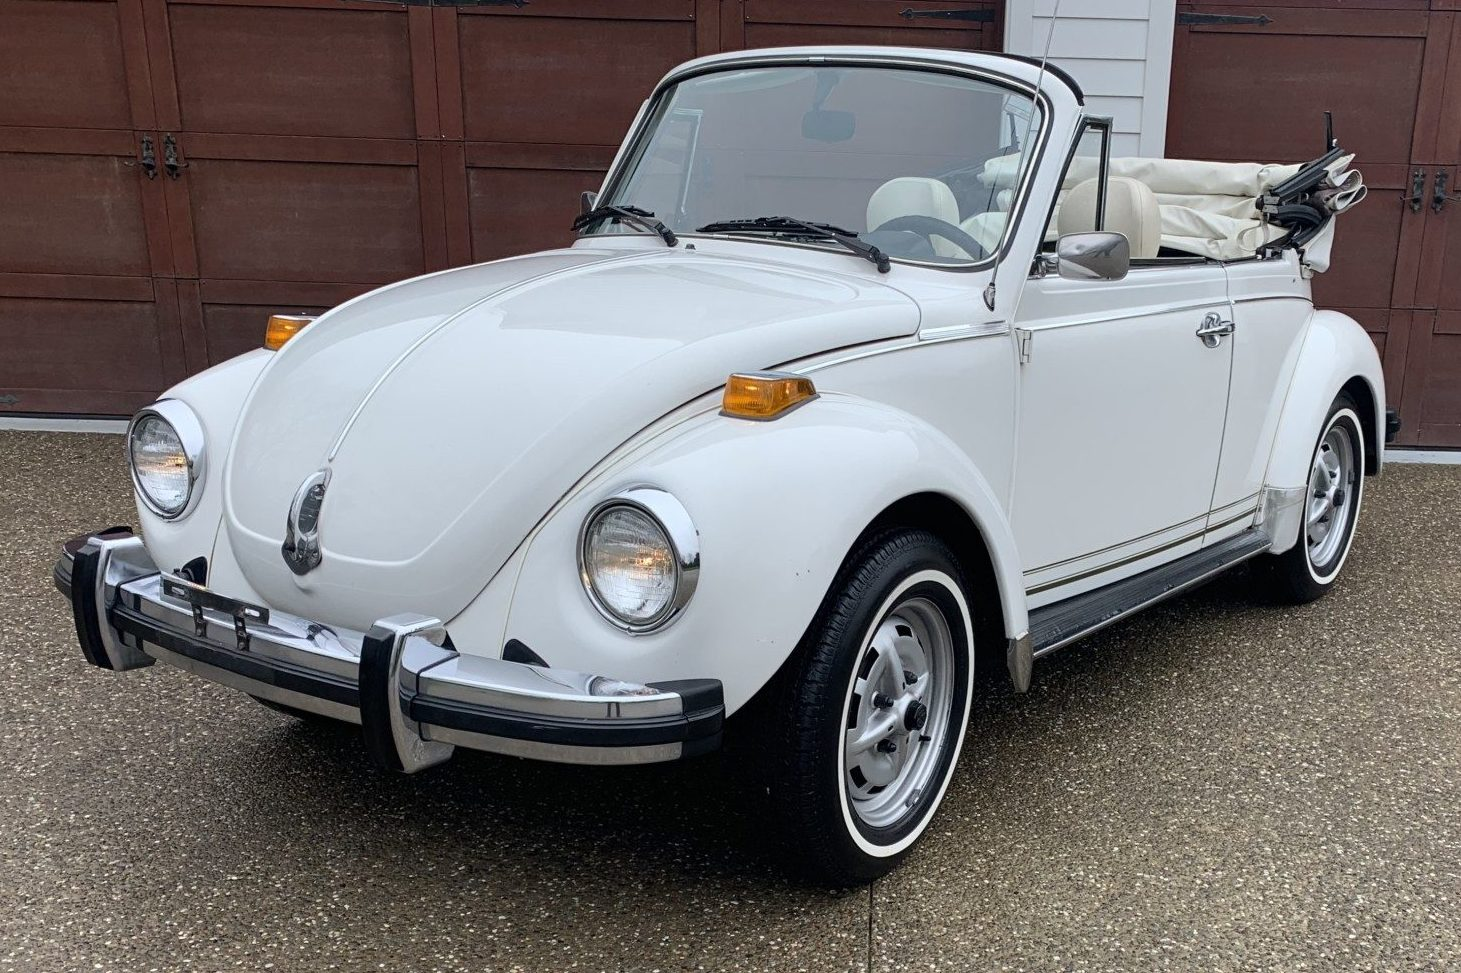 hight resolution of 1978 volkswagen beetle convertible for sale on bat auctions sold for 14 900 on may 14 2019 lot 18 827 bring a trailer